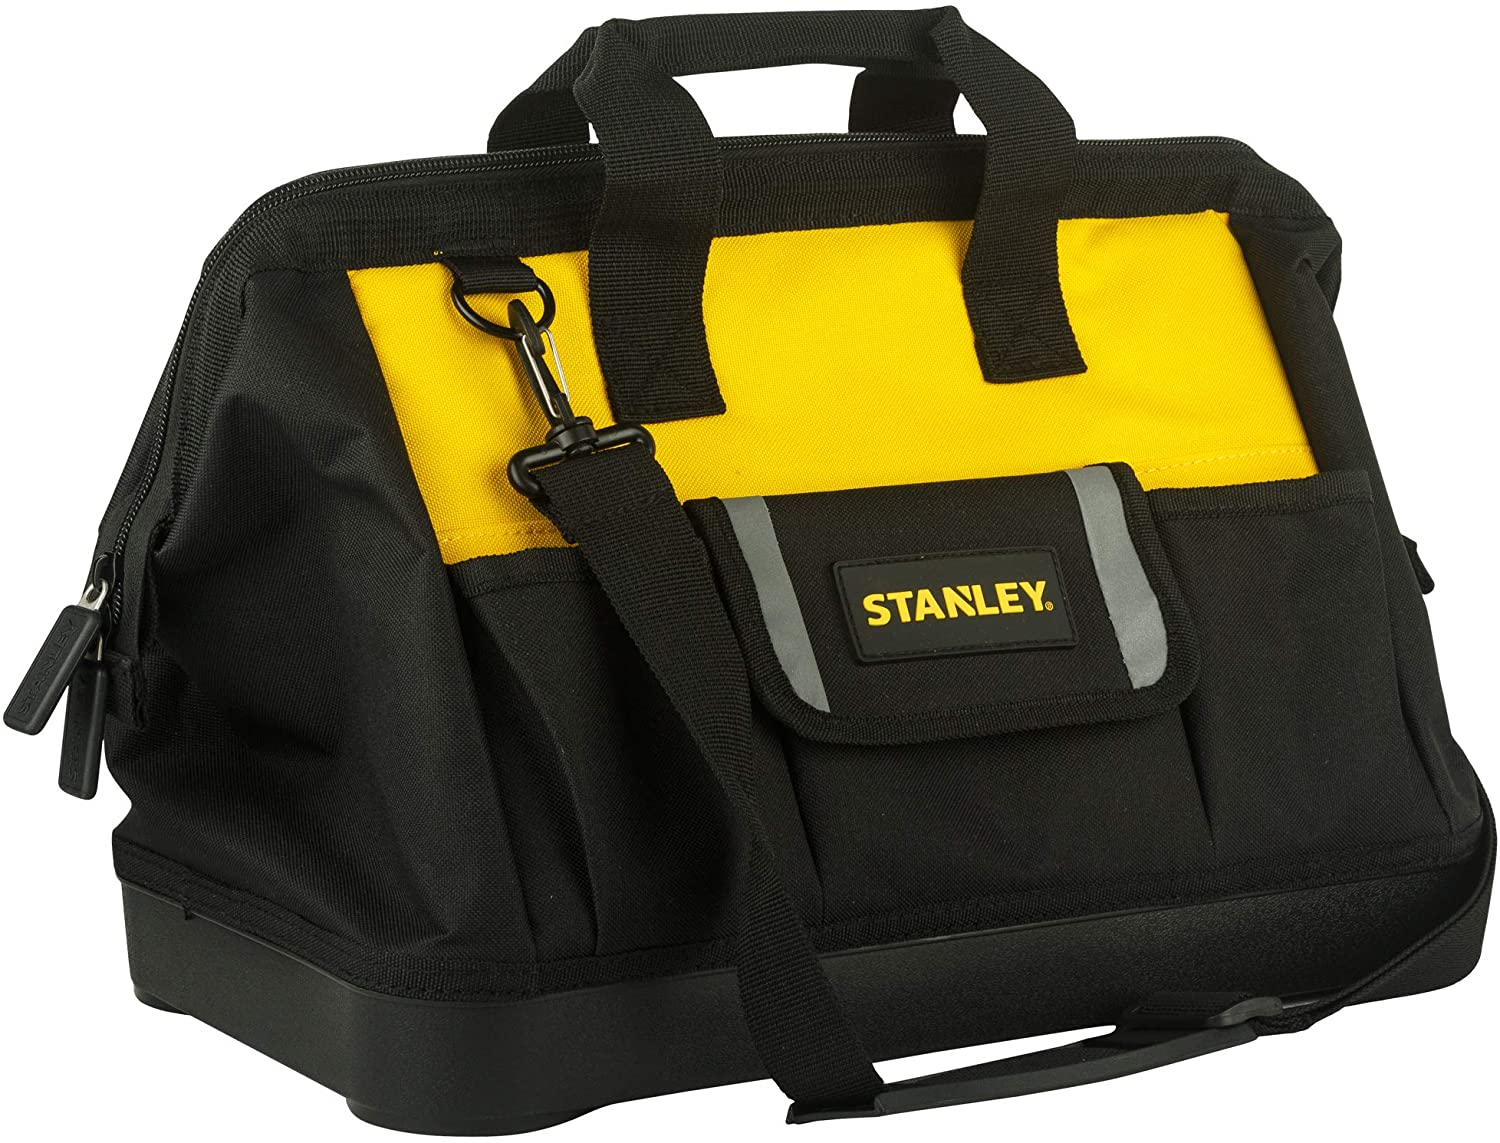 Stanley 16 inch Open Mouth Bag, STST516126